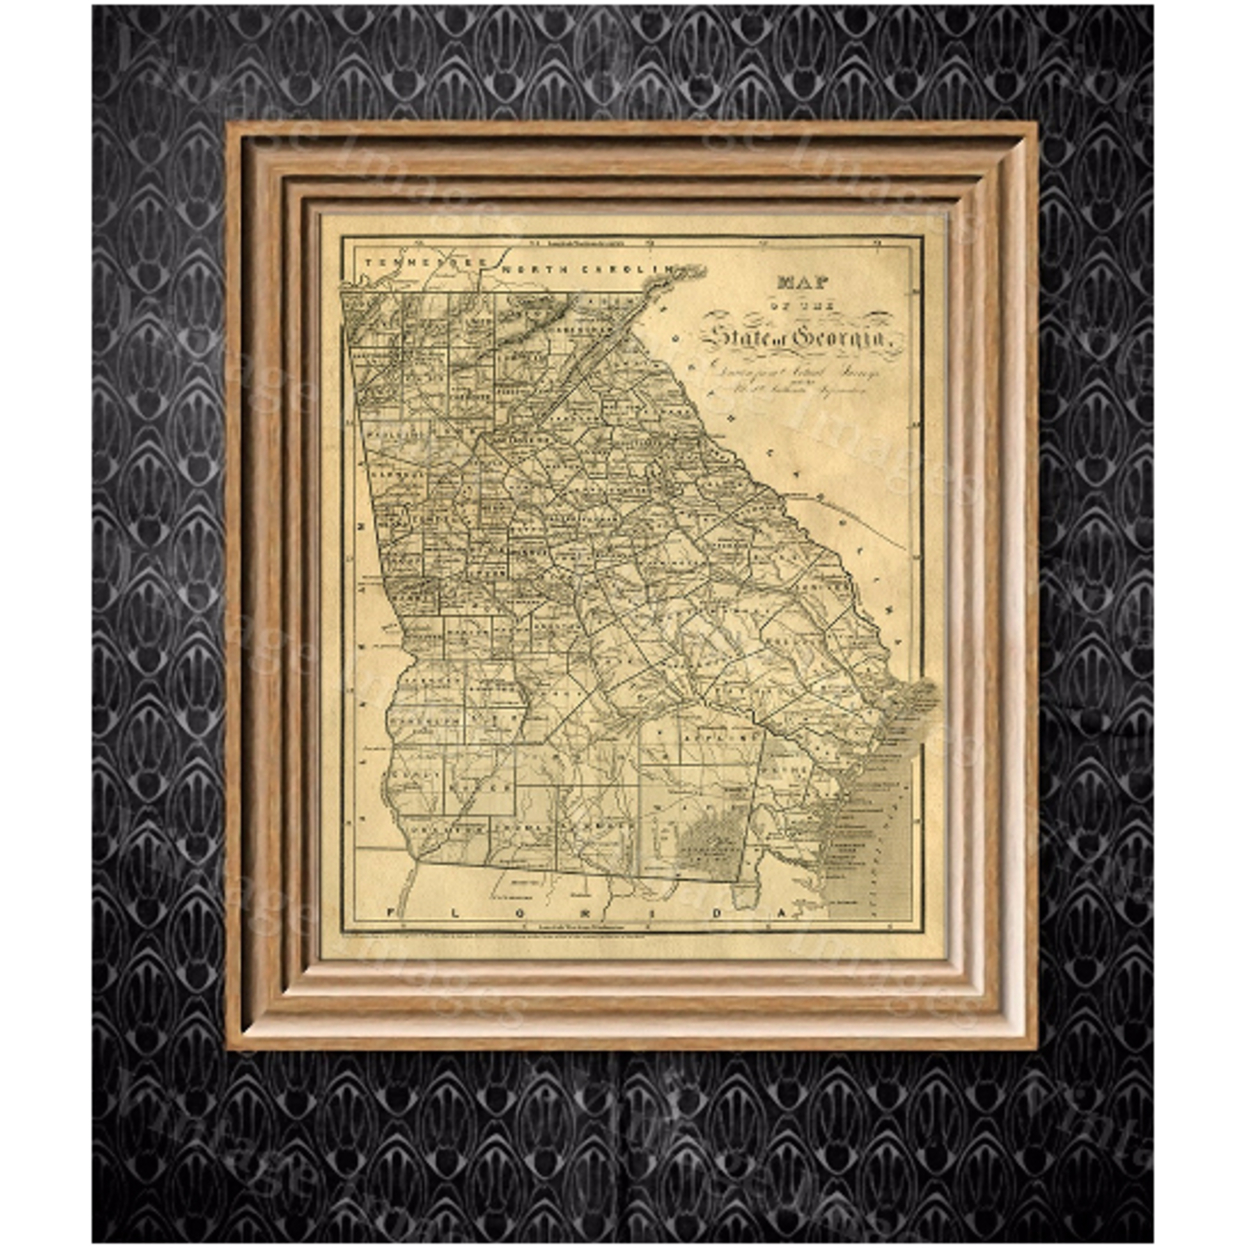 """Georgia map Antique map of Georgia Antique Restoration Hardware Style Map of Georgia Large Old Georgia Wall Map Home Decor Office art - 11\"""" x 14\"""" inches [$14.44] 56d1eb56693d6f033b8b496d"""